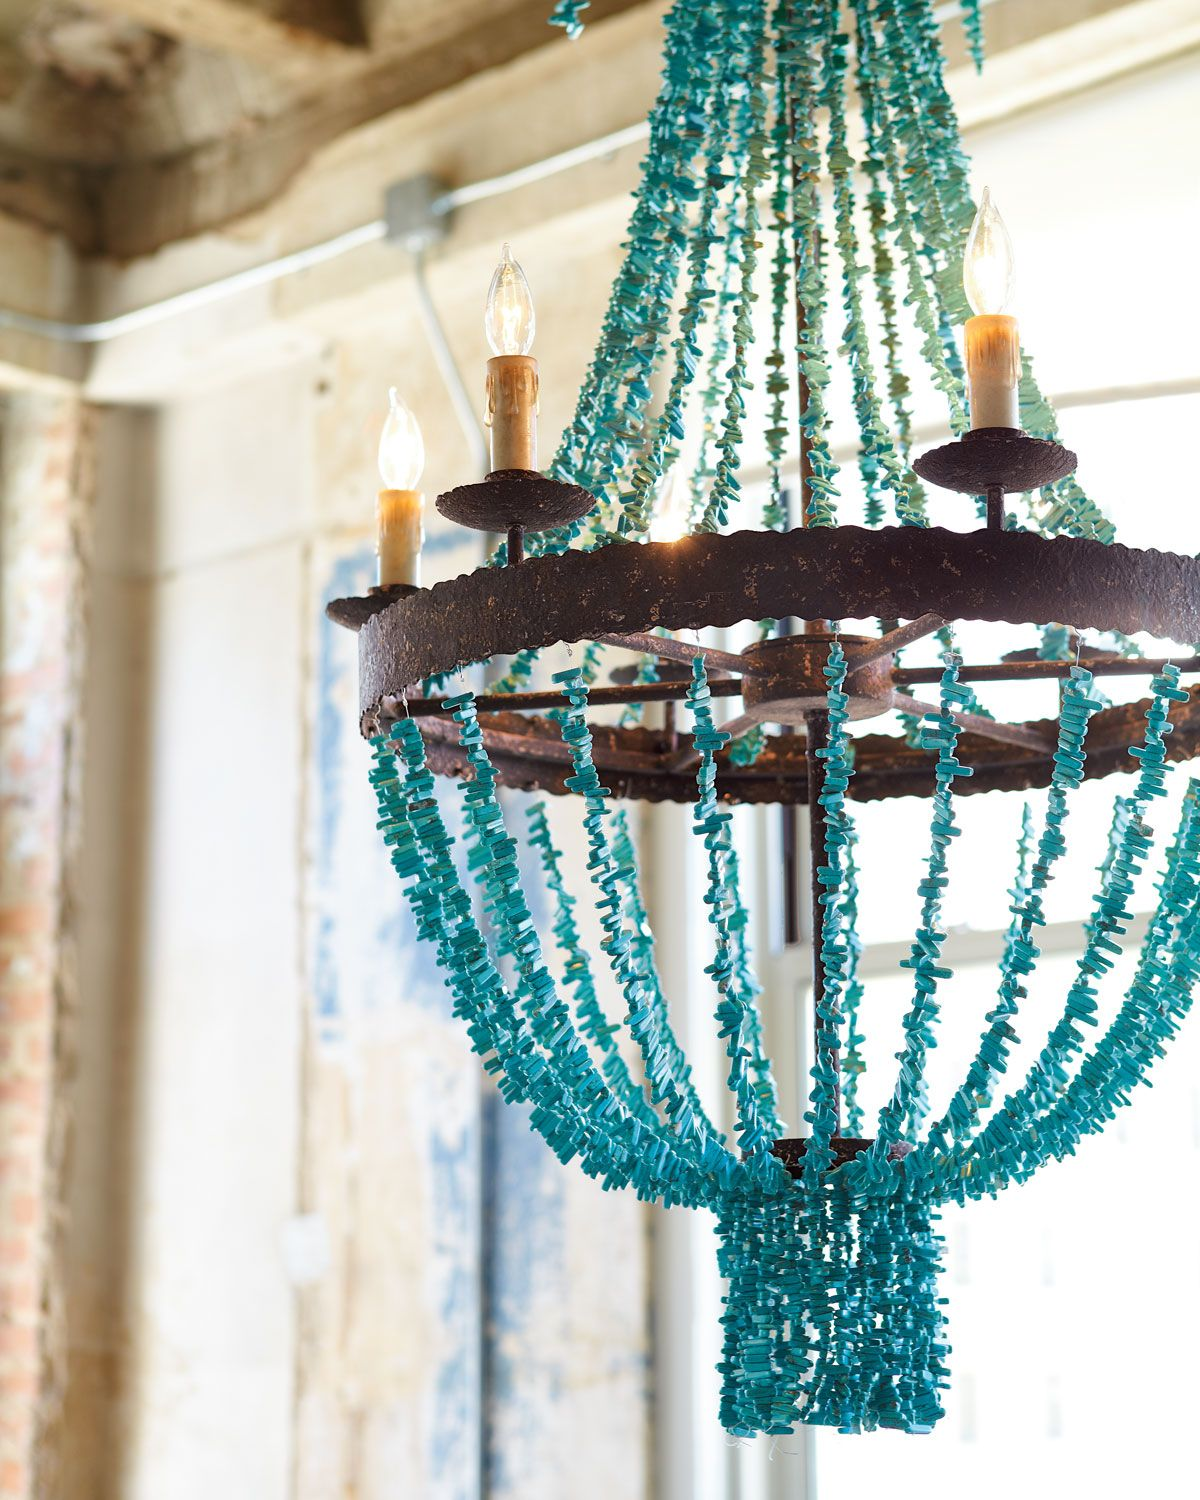 regina andrew design turquoise beads six light chandelier - Turquoise Chandelier Light